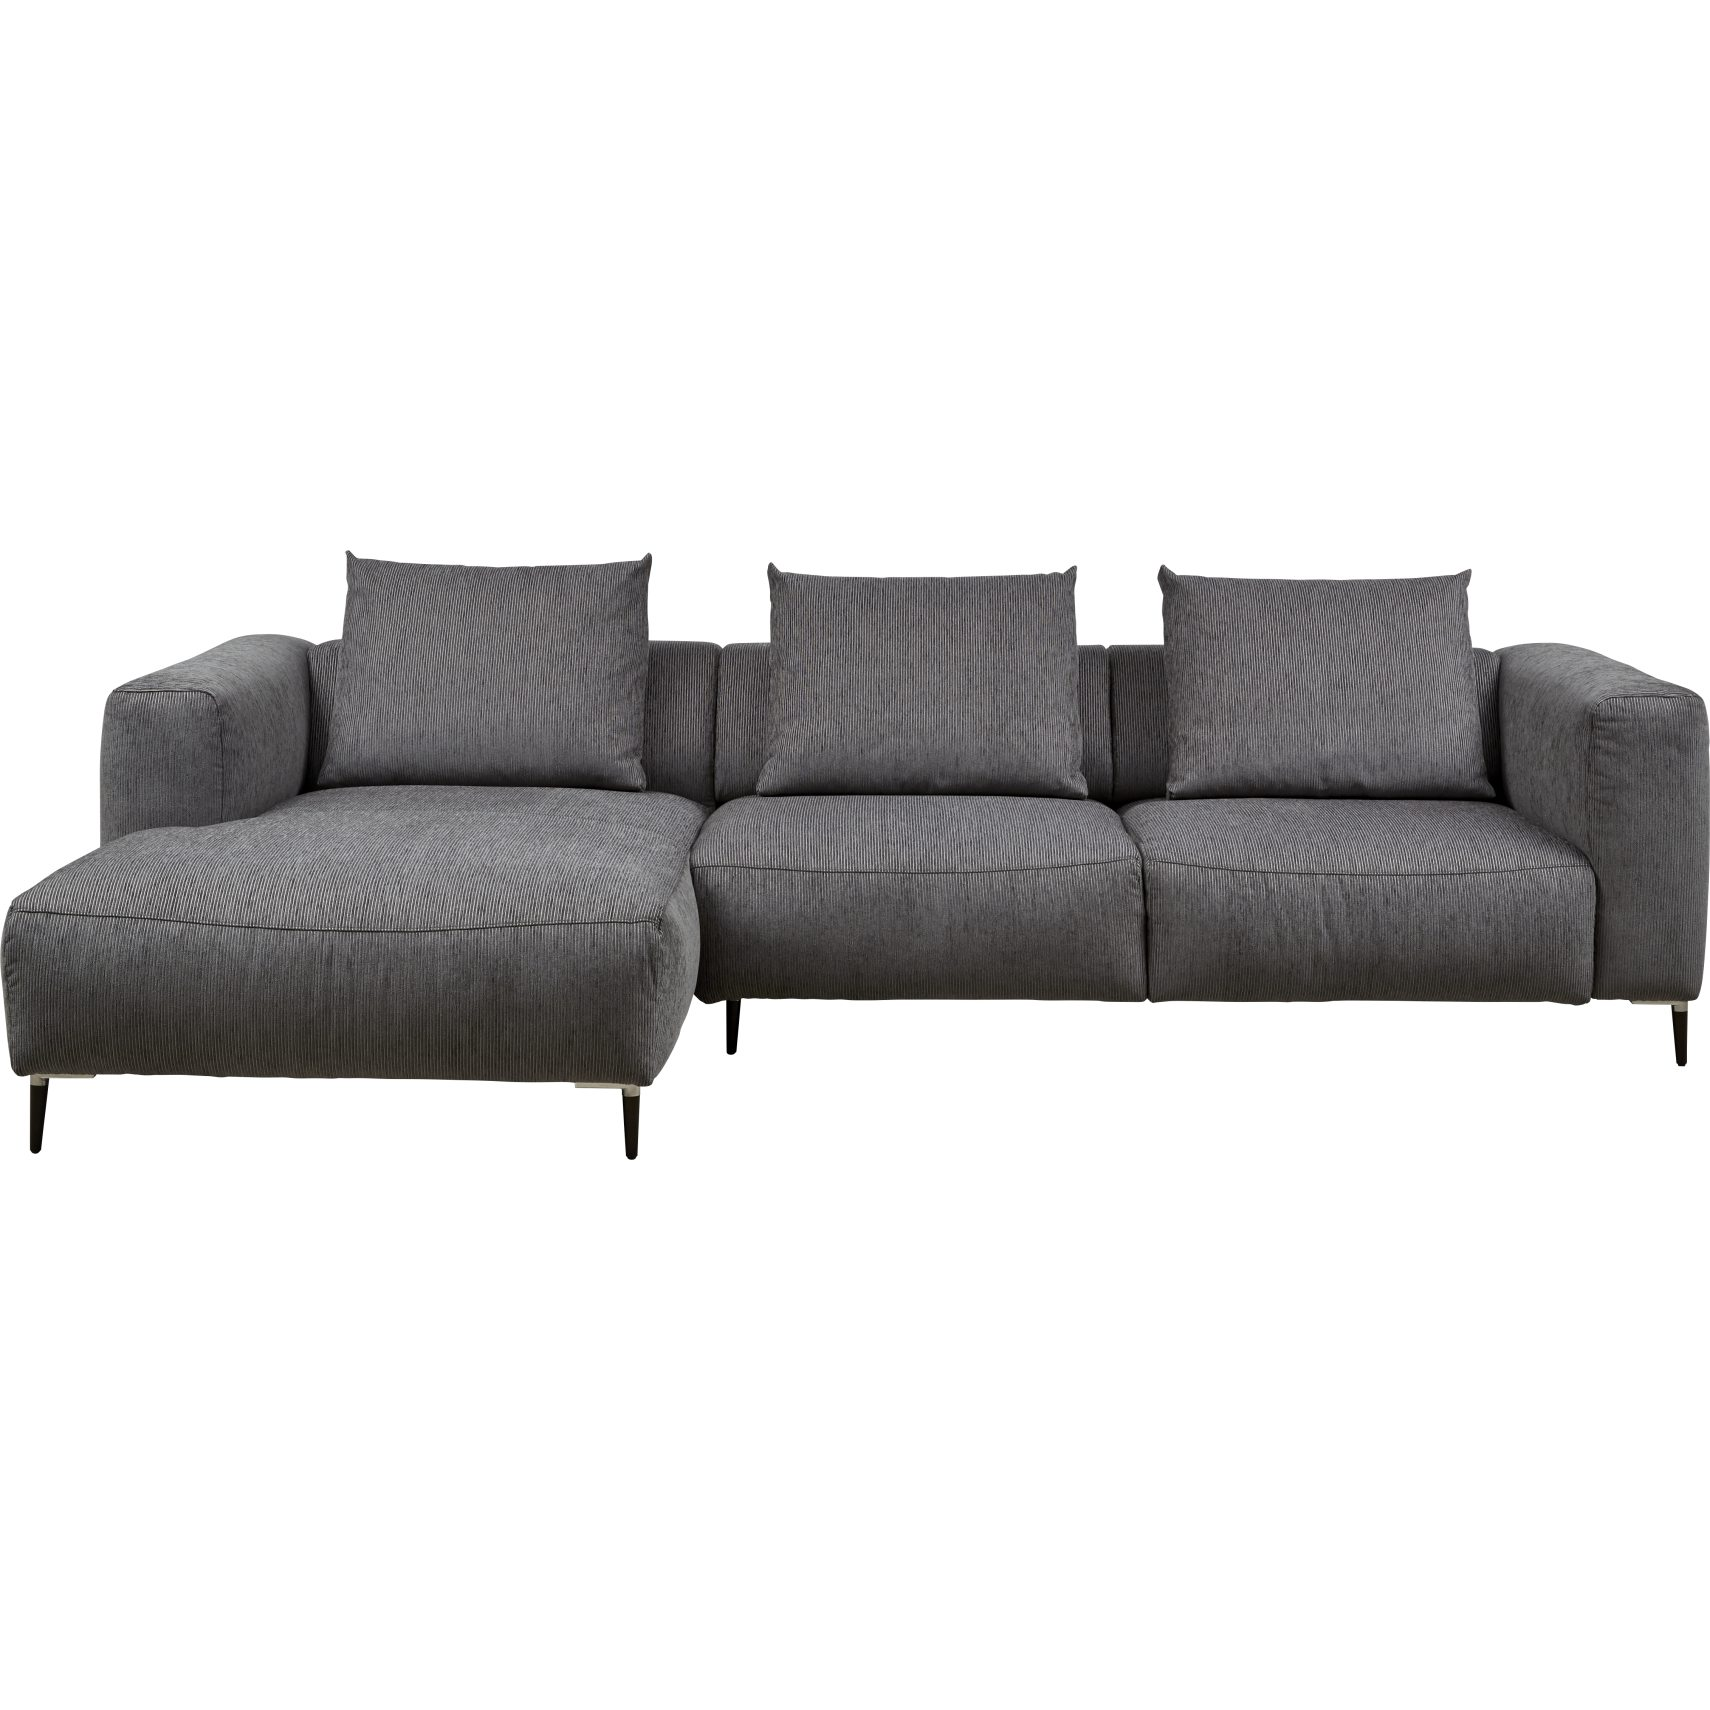 Roana Sofa med chaiselong - Palermo 1045 Space Grey stof og ben i aluminium/sort træ